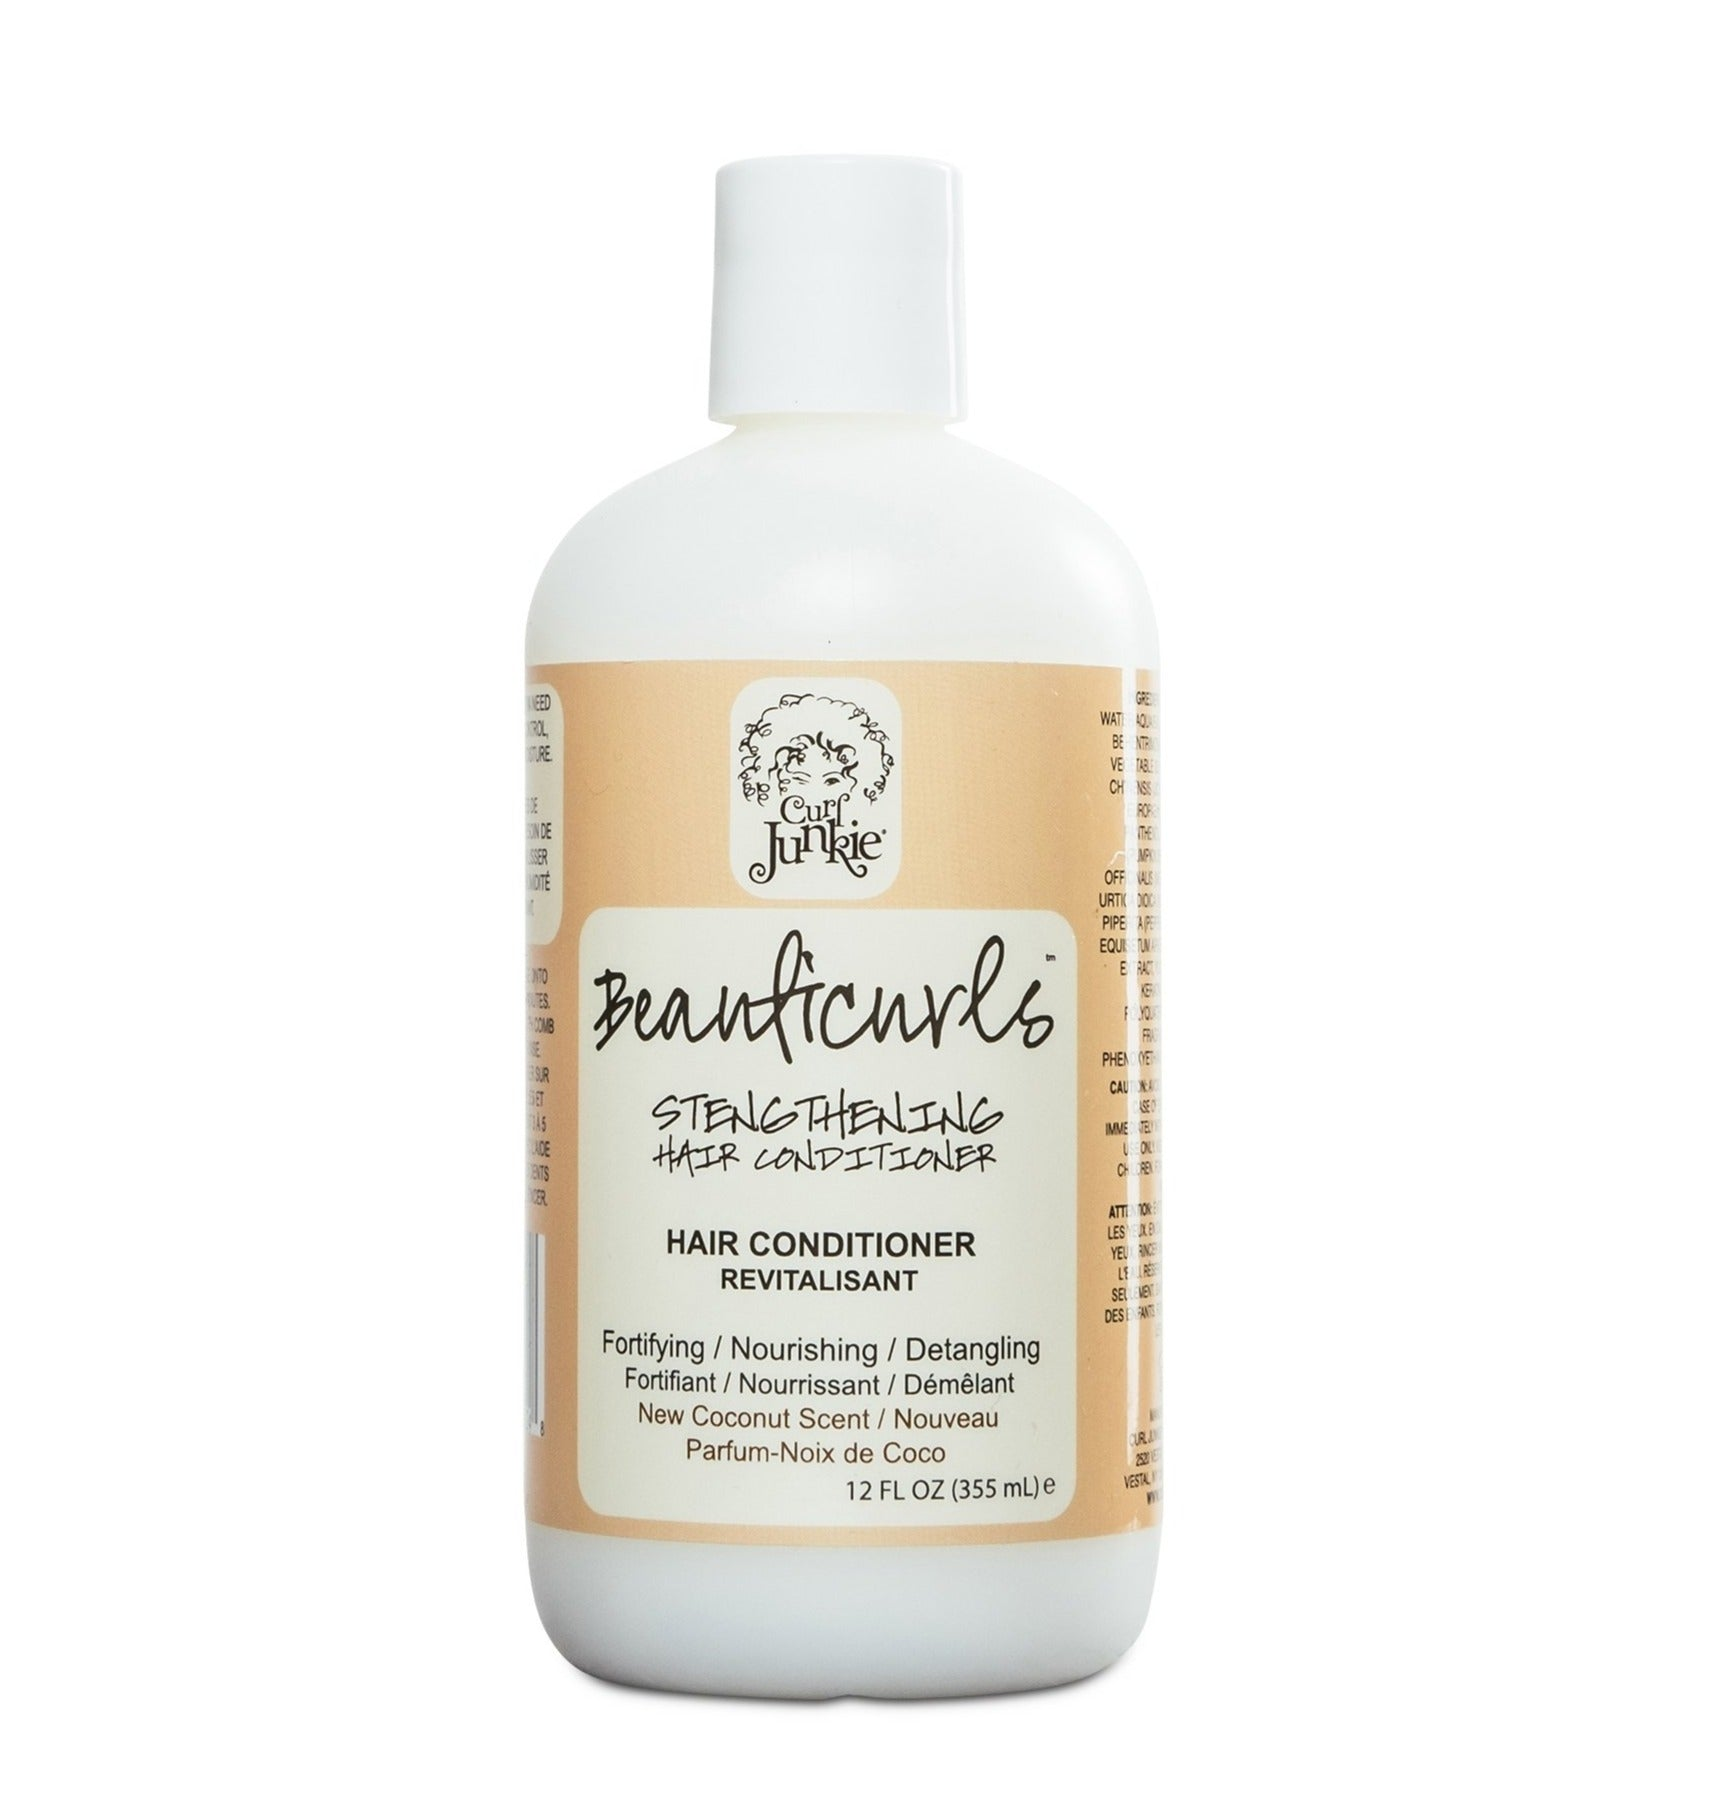 Curl Junkie BeautiCurls Strengthening